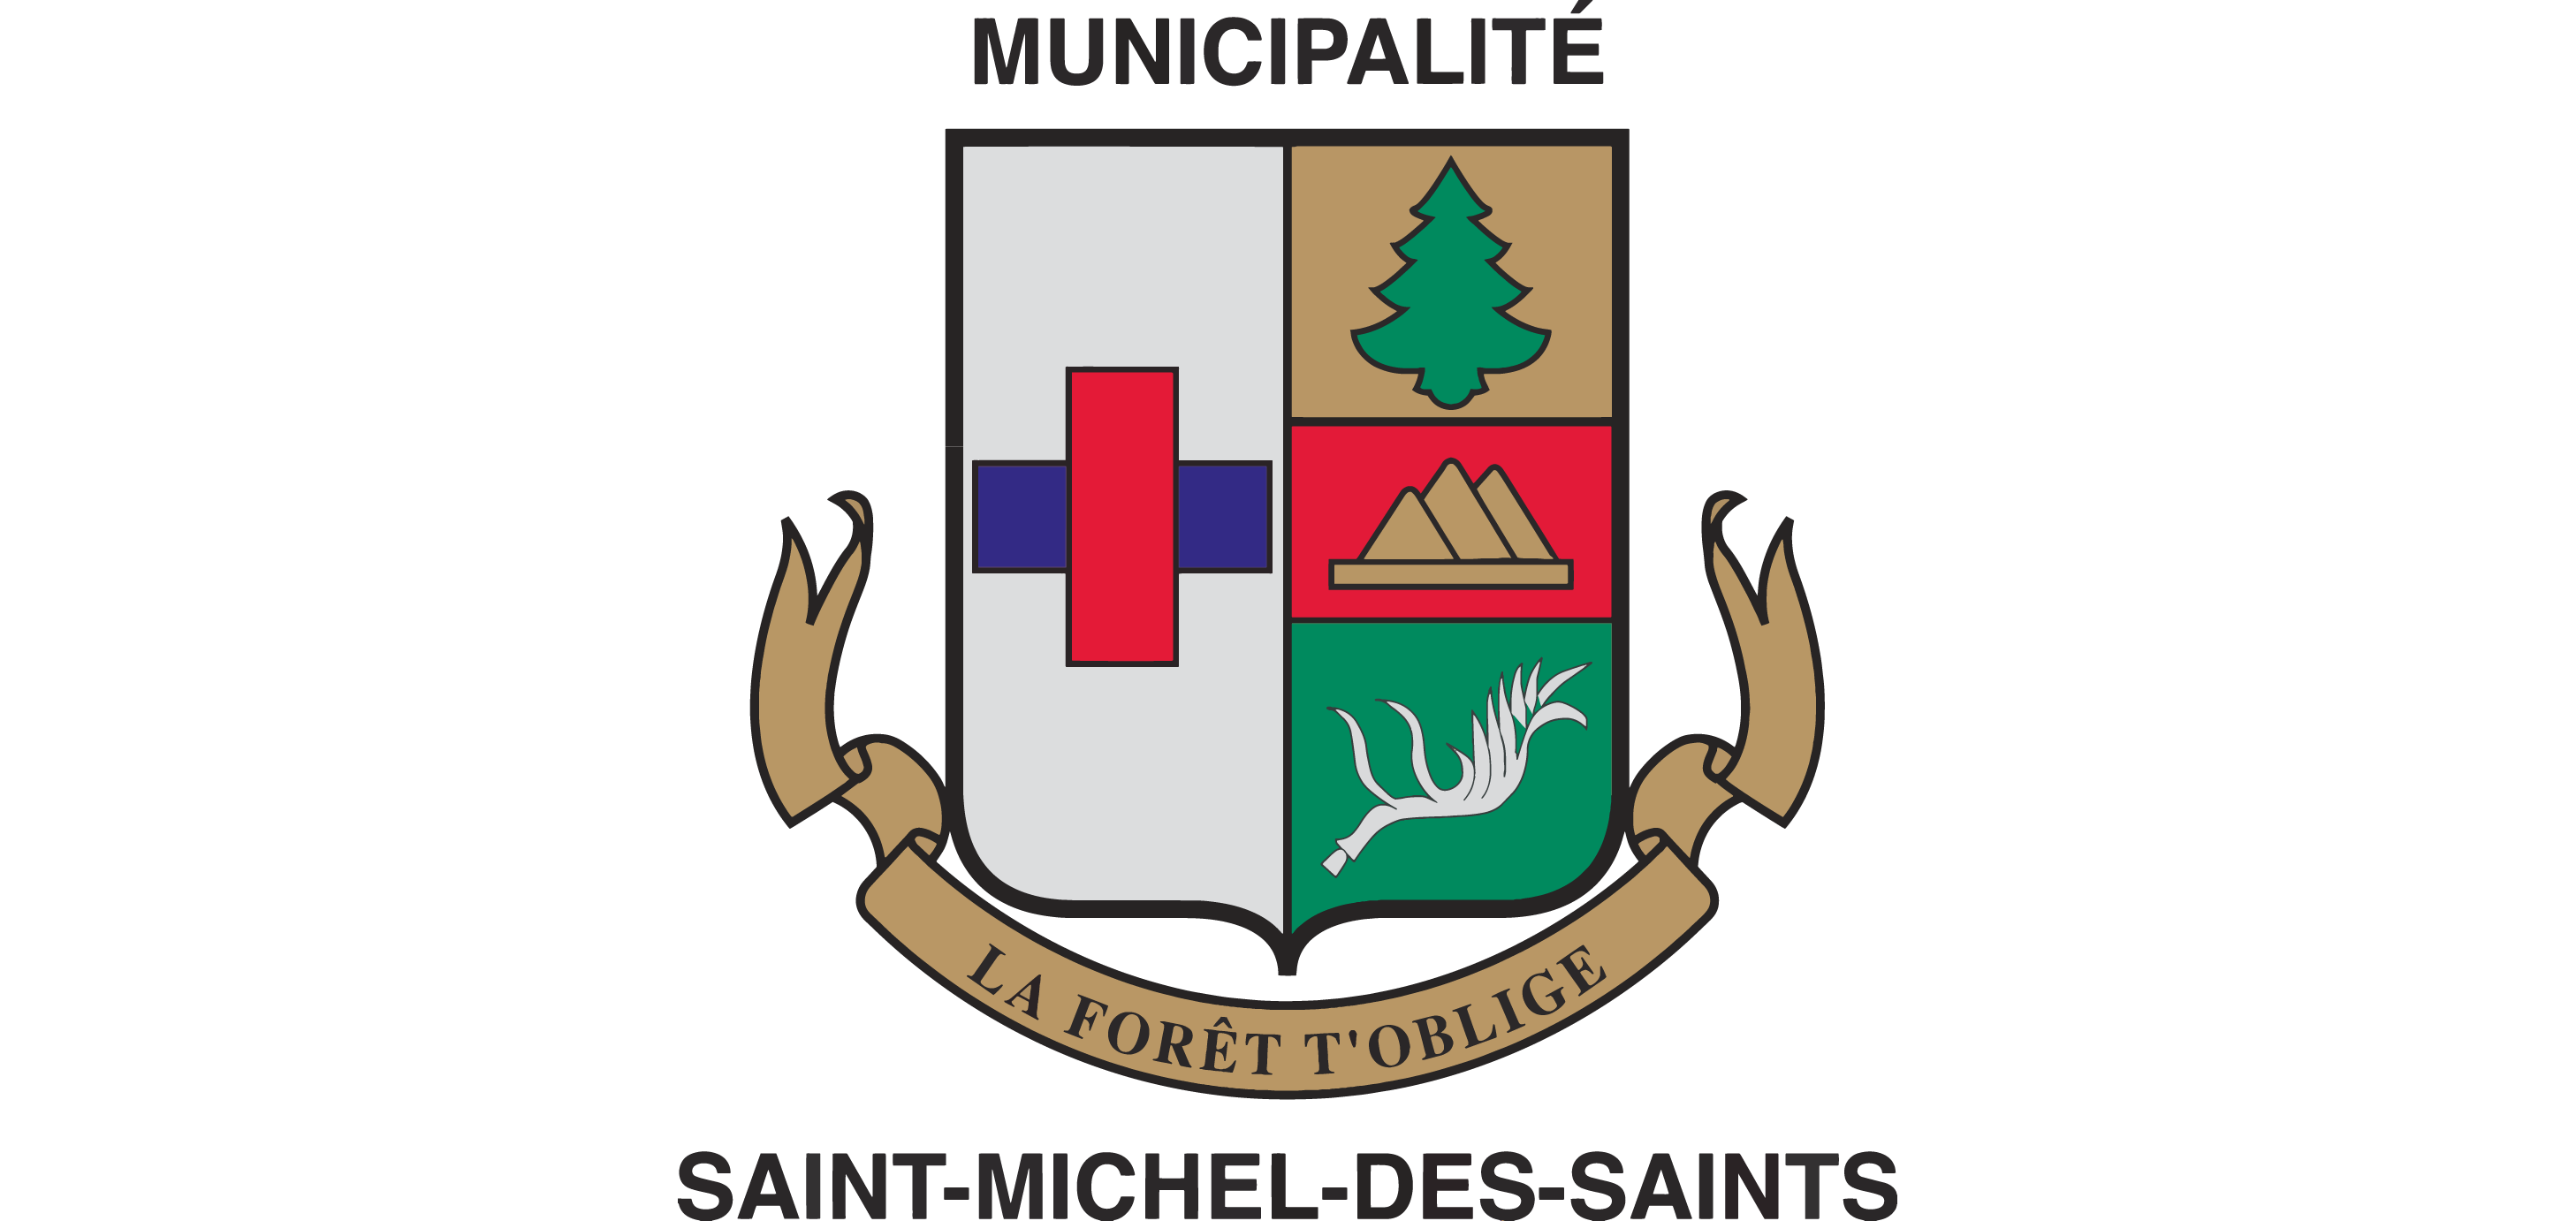 Municipalité Saint-Michel-des-Saints